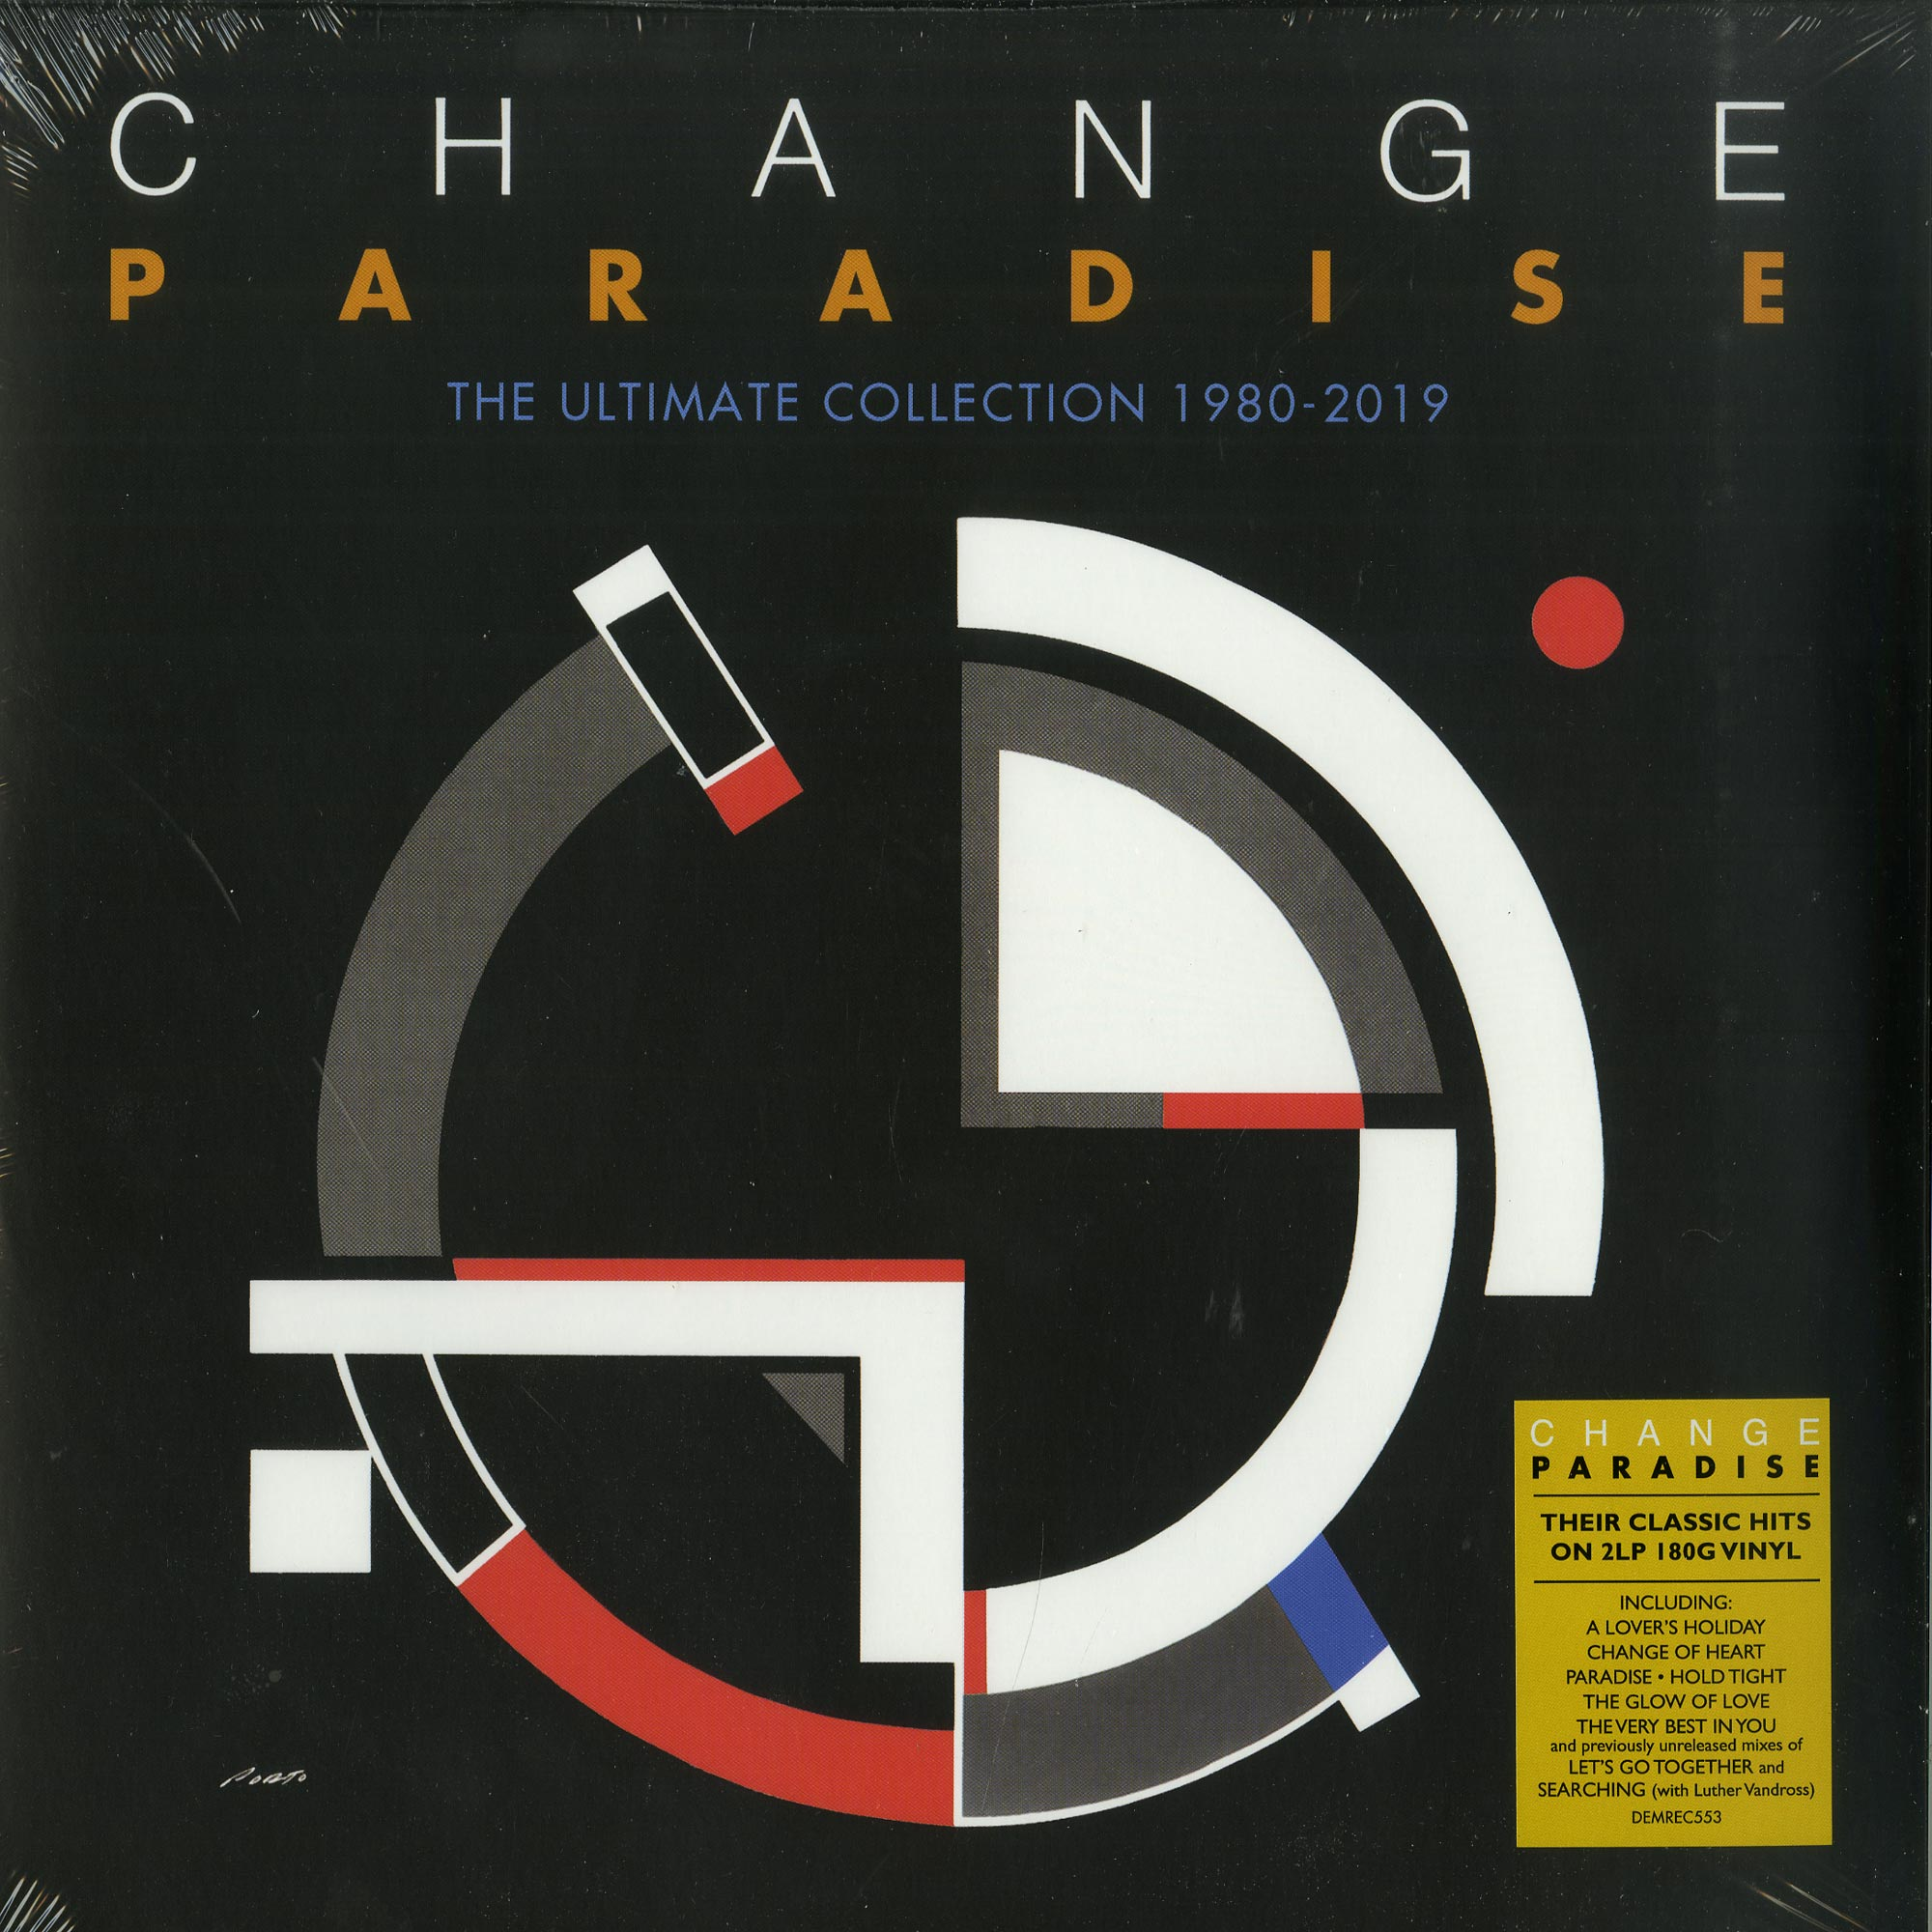 Change - PARADISE - THE ULTIMATE COLLECTION 1980 - 2019